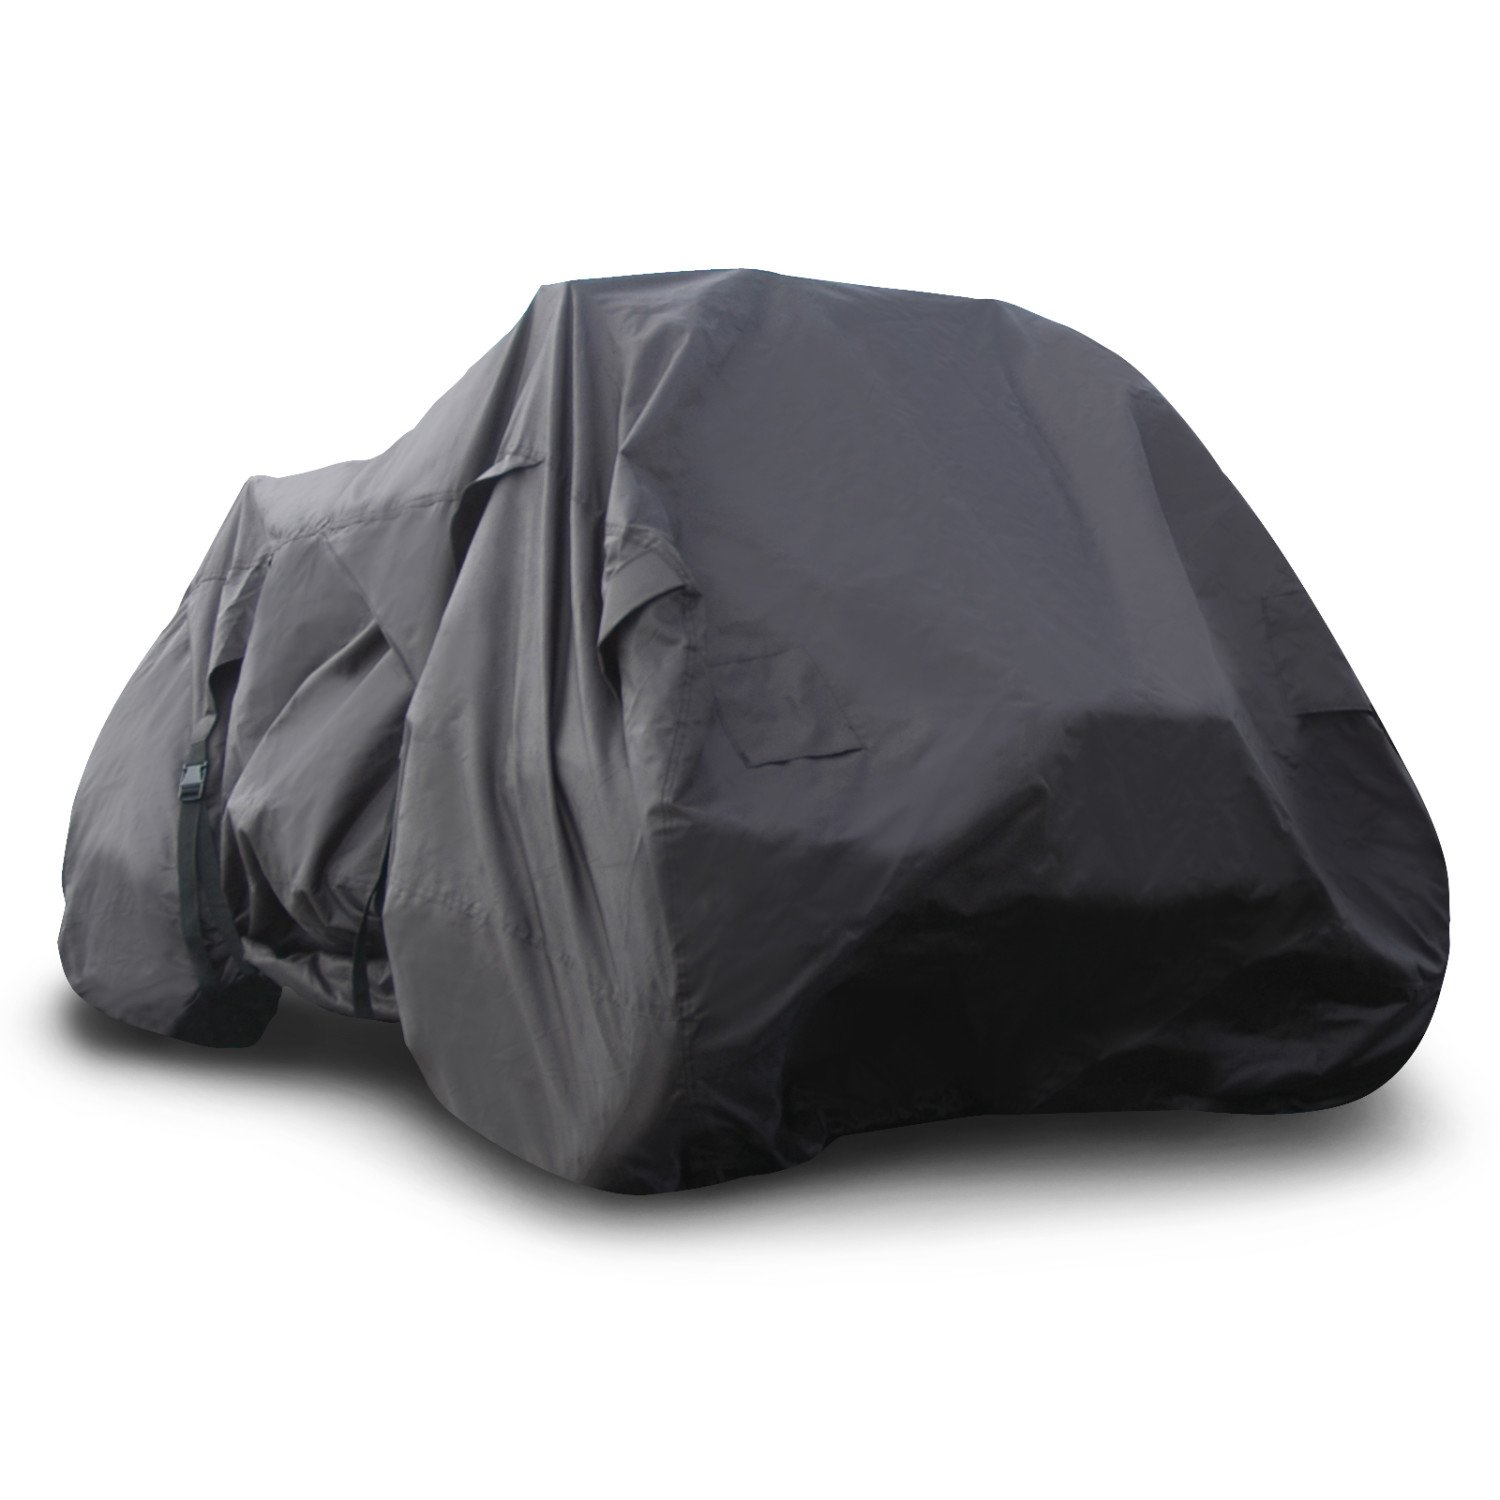 """Budge Sportsman Extra Large ATV Cover Trailerable Fits ATVs up to 7' 3"""" Long, ATV-15 (Black, Waterproof)"""